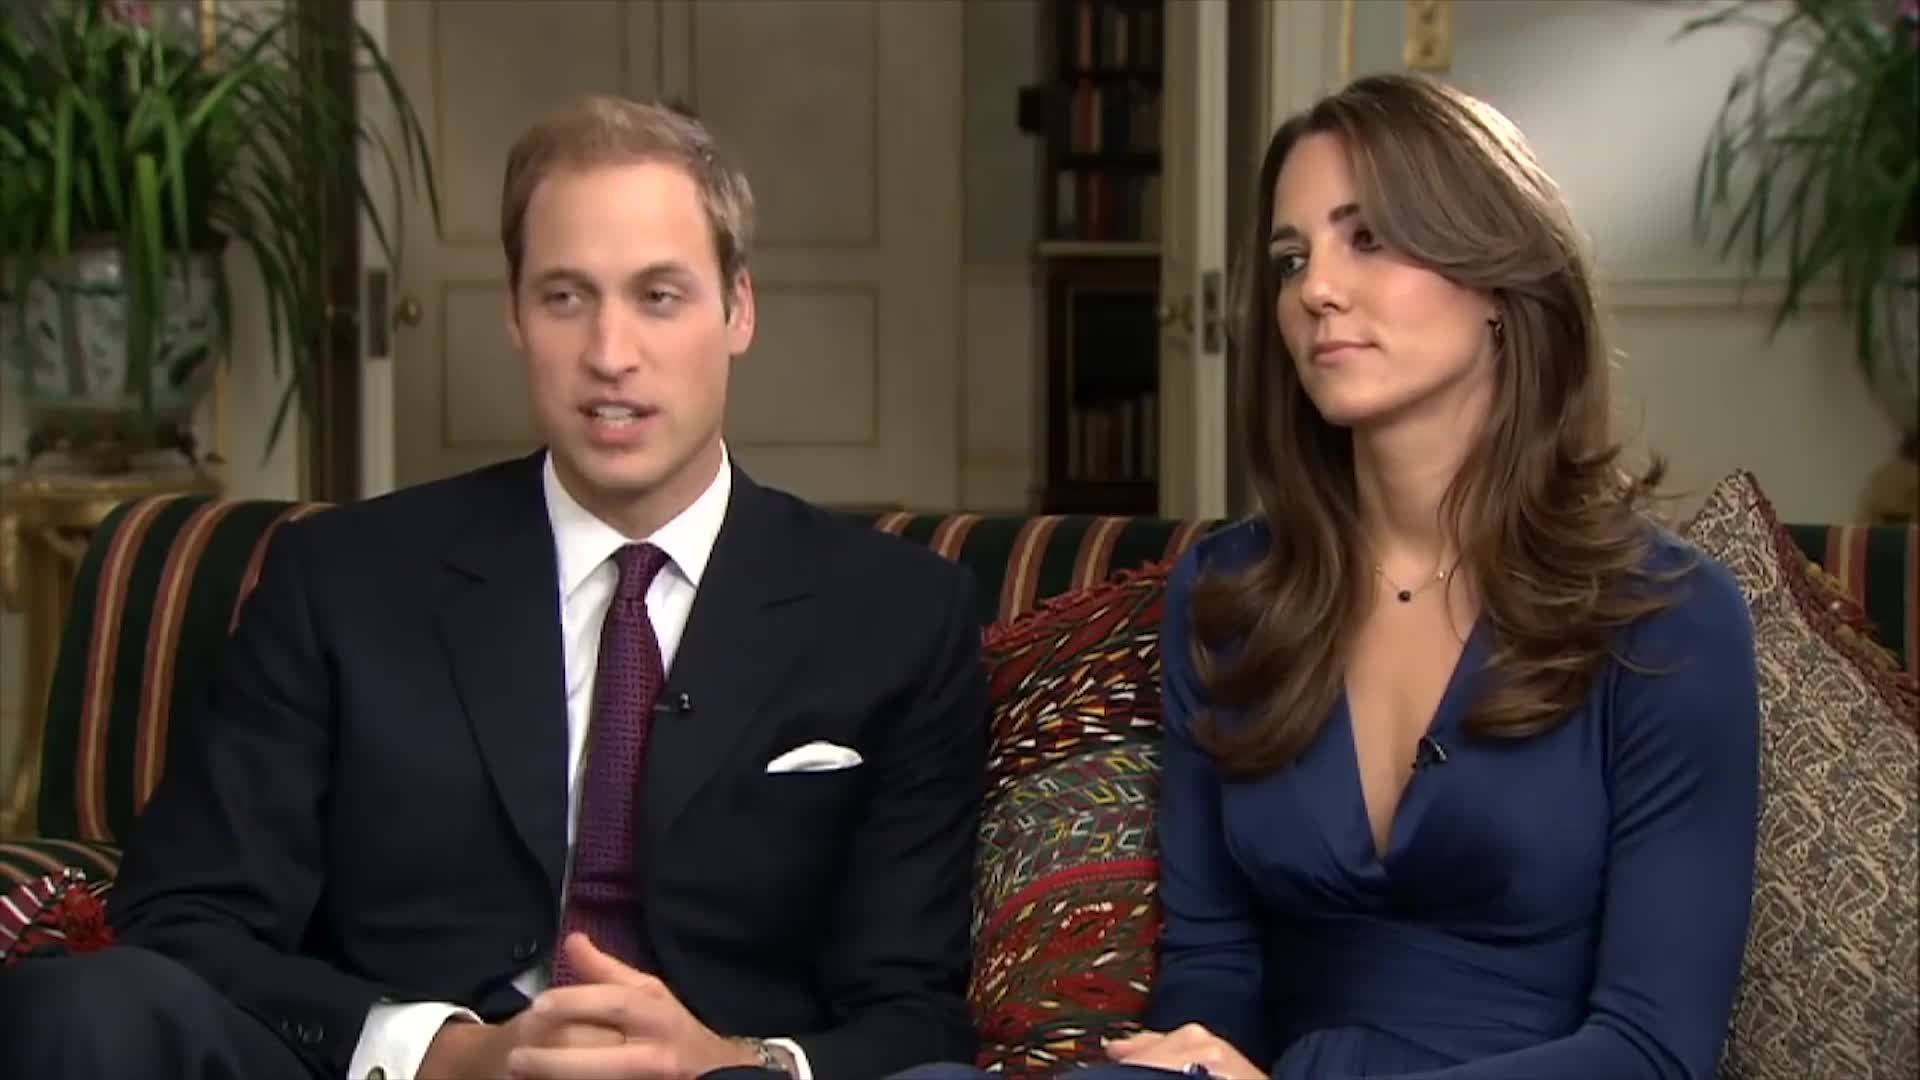 Kate Middleton just gave her first ever interview as a royal